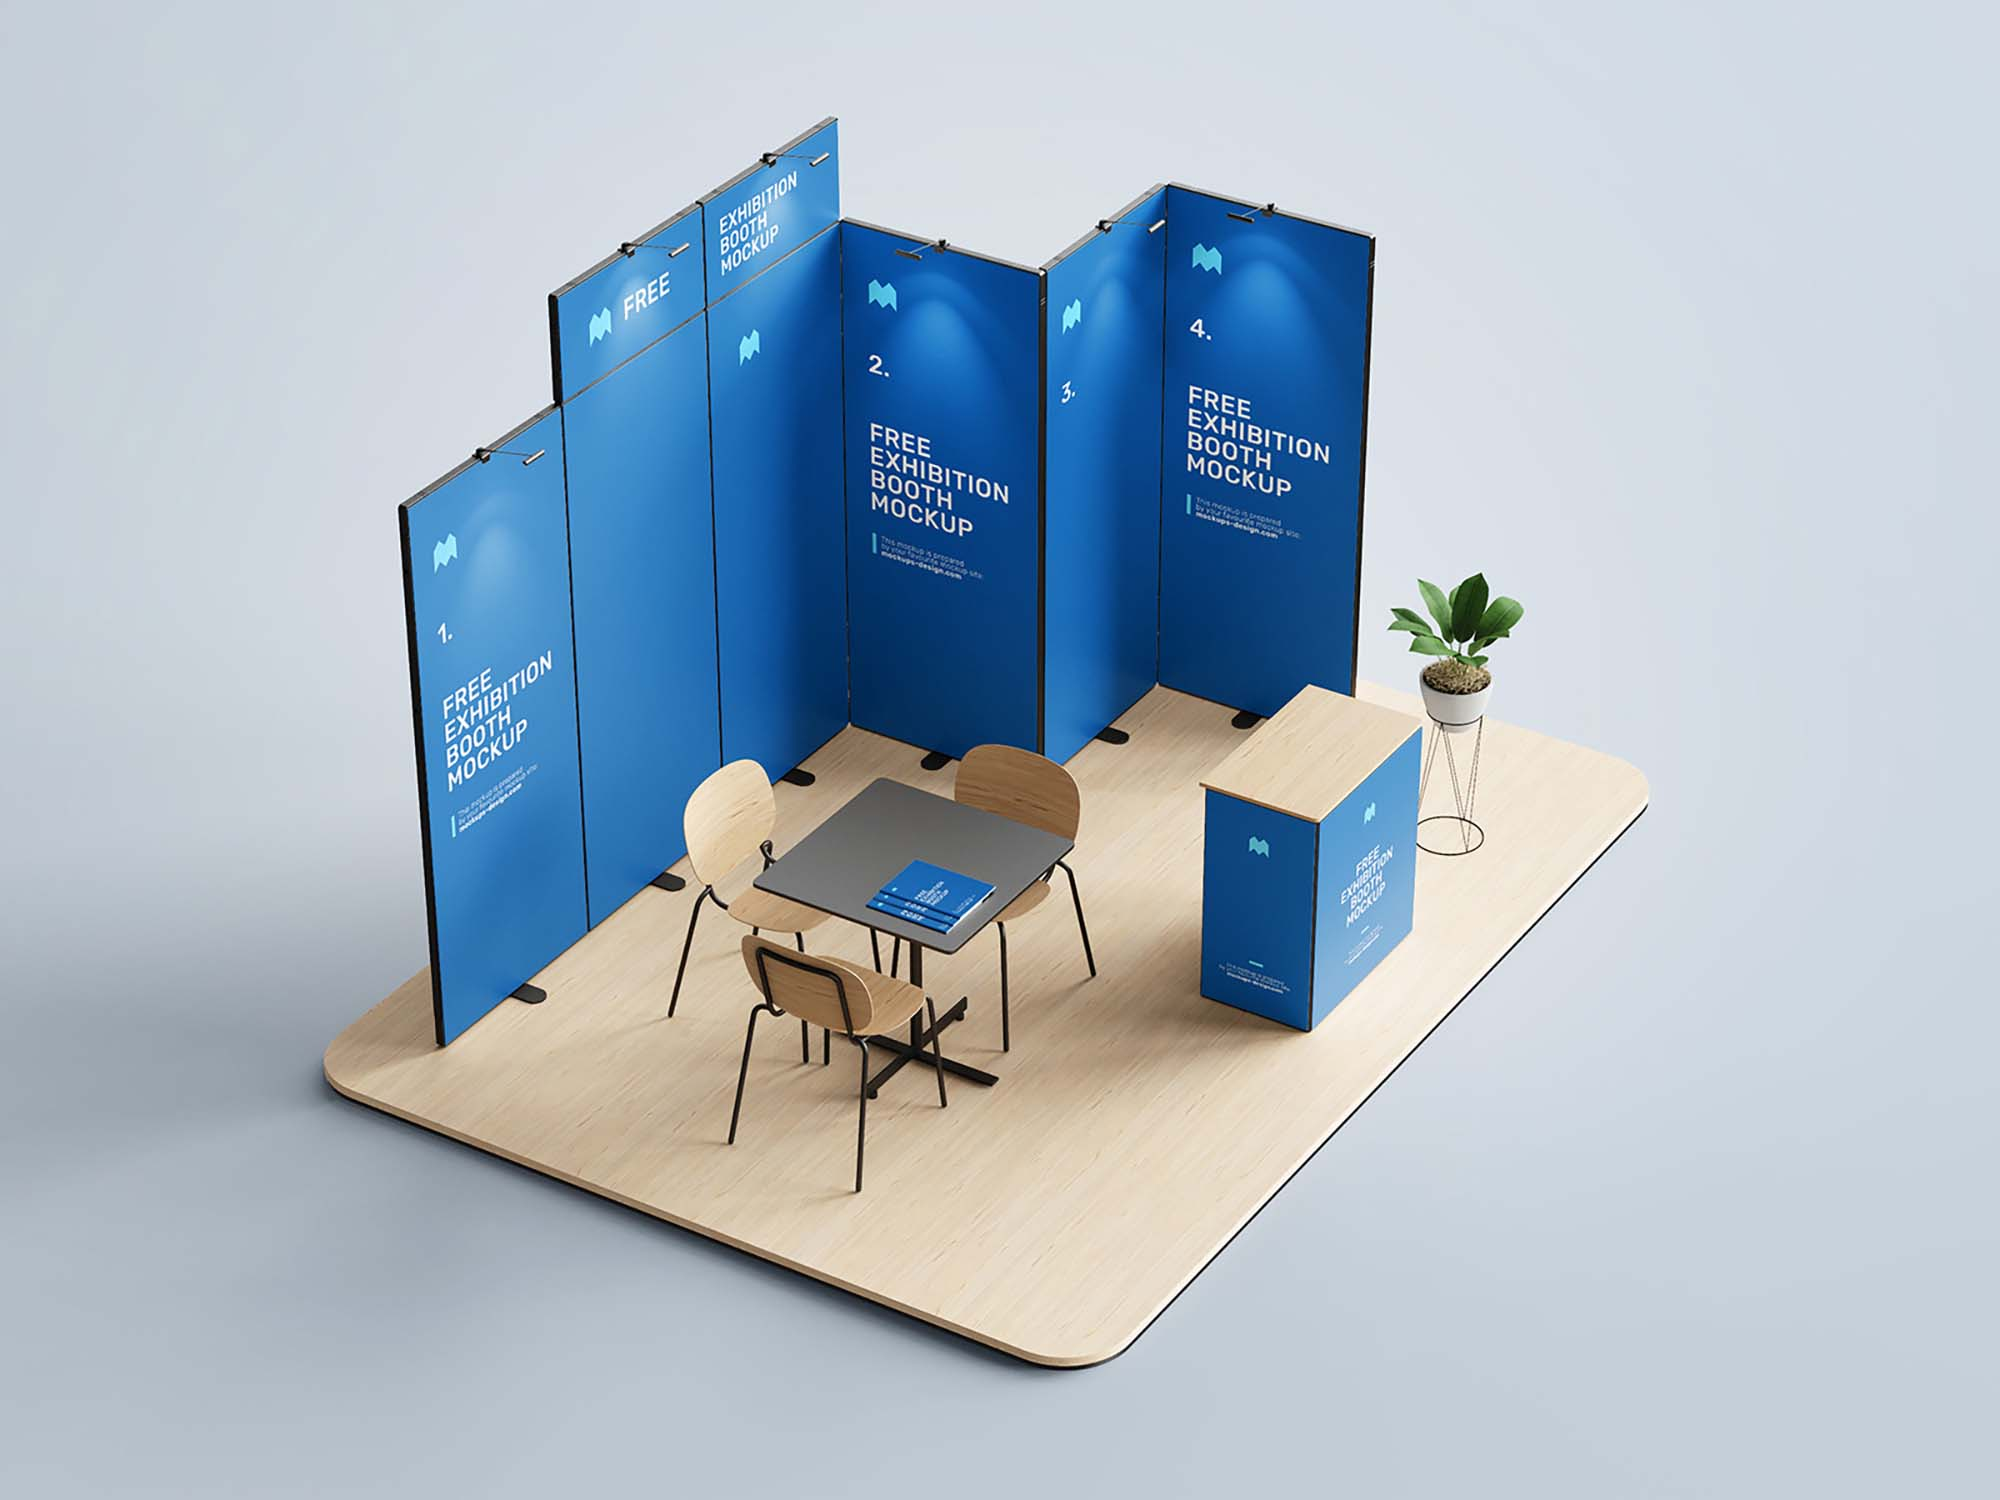 Exhibition Booth Mockup 3